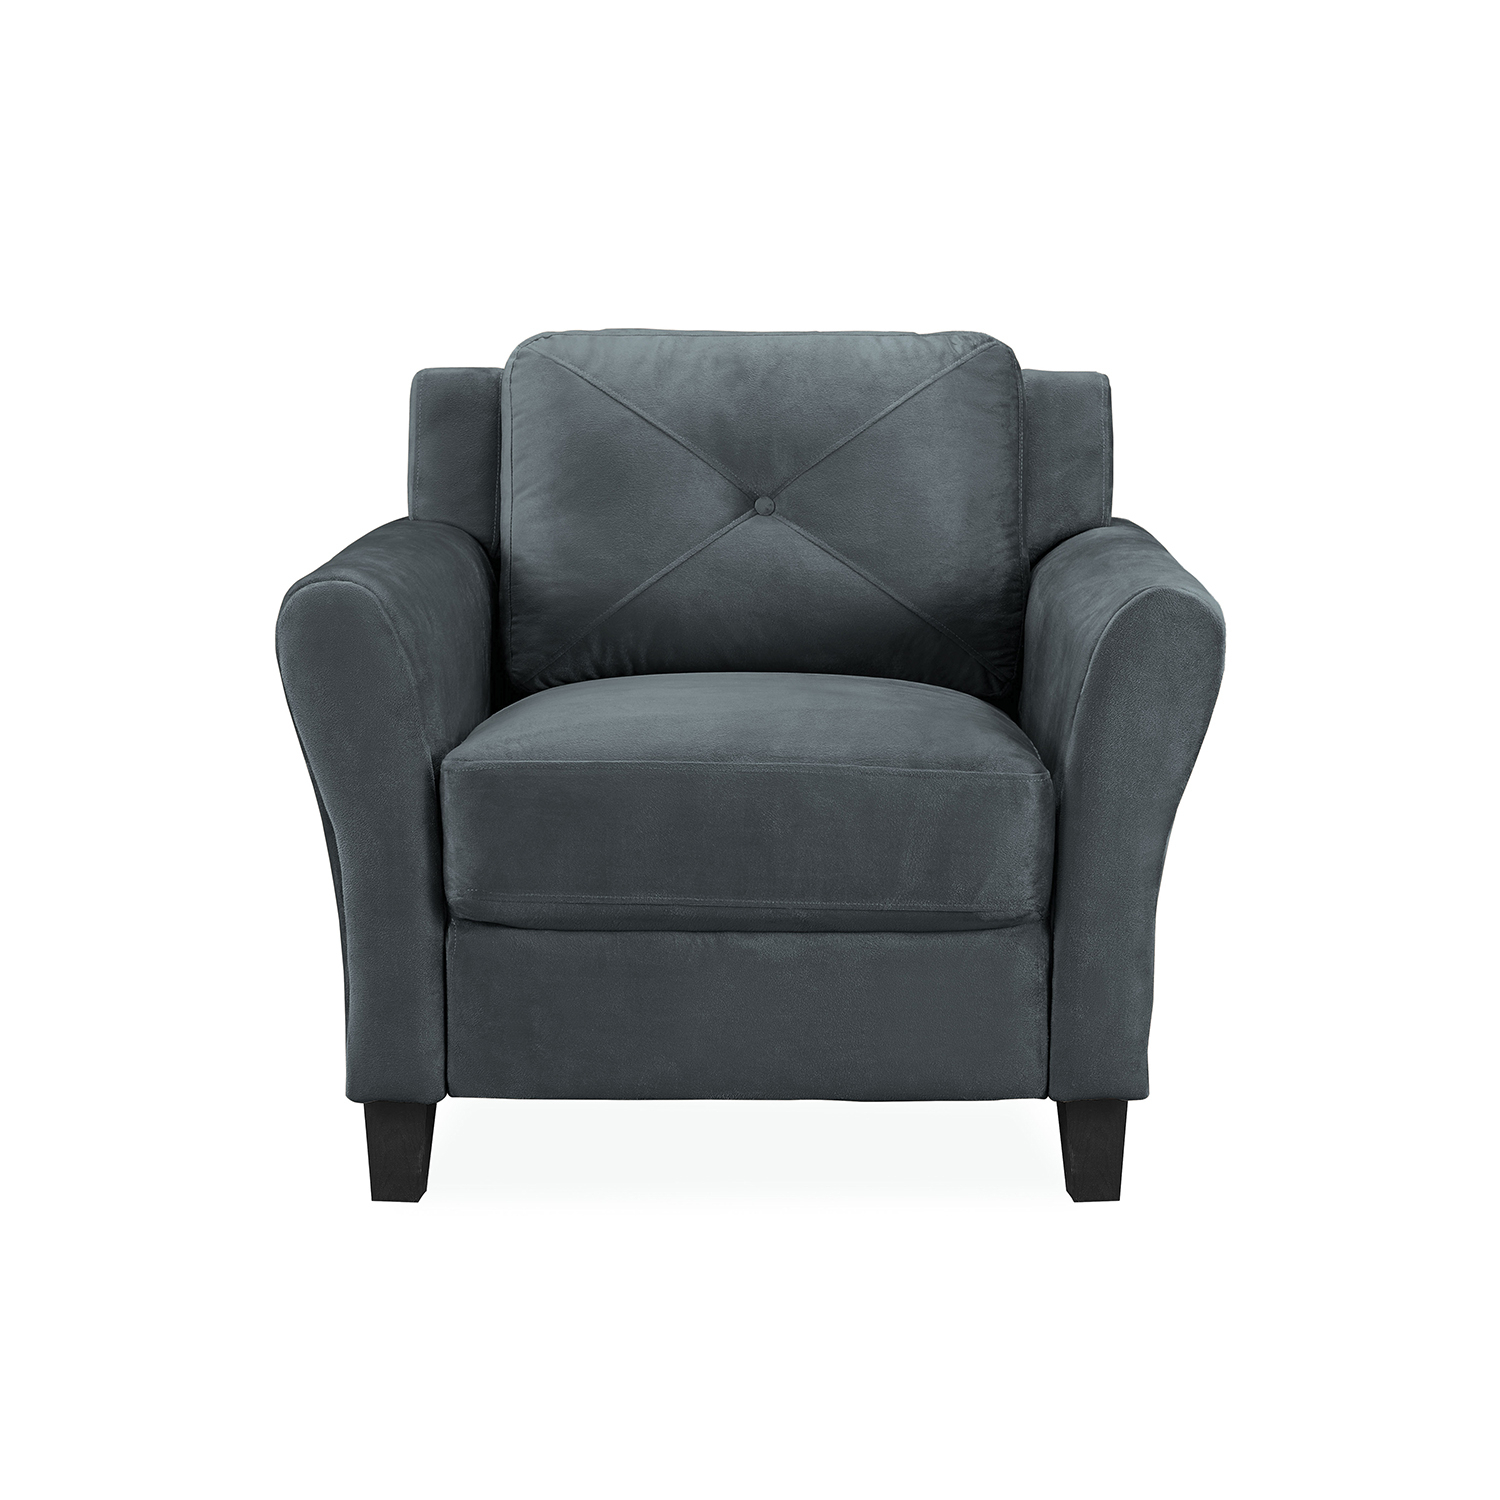 Lifestyle Solutions Harvard Dark Grey Polyester Chair Pertaining To Allie Dark Grey Sofa Chairs (Image 13 of 20)